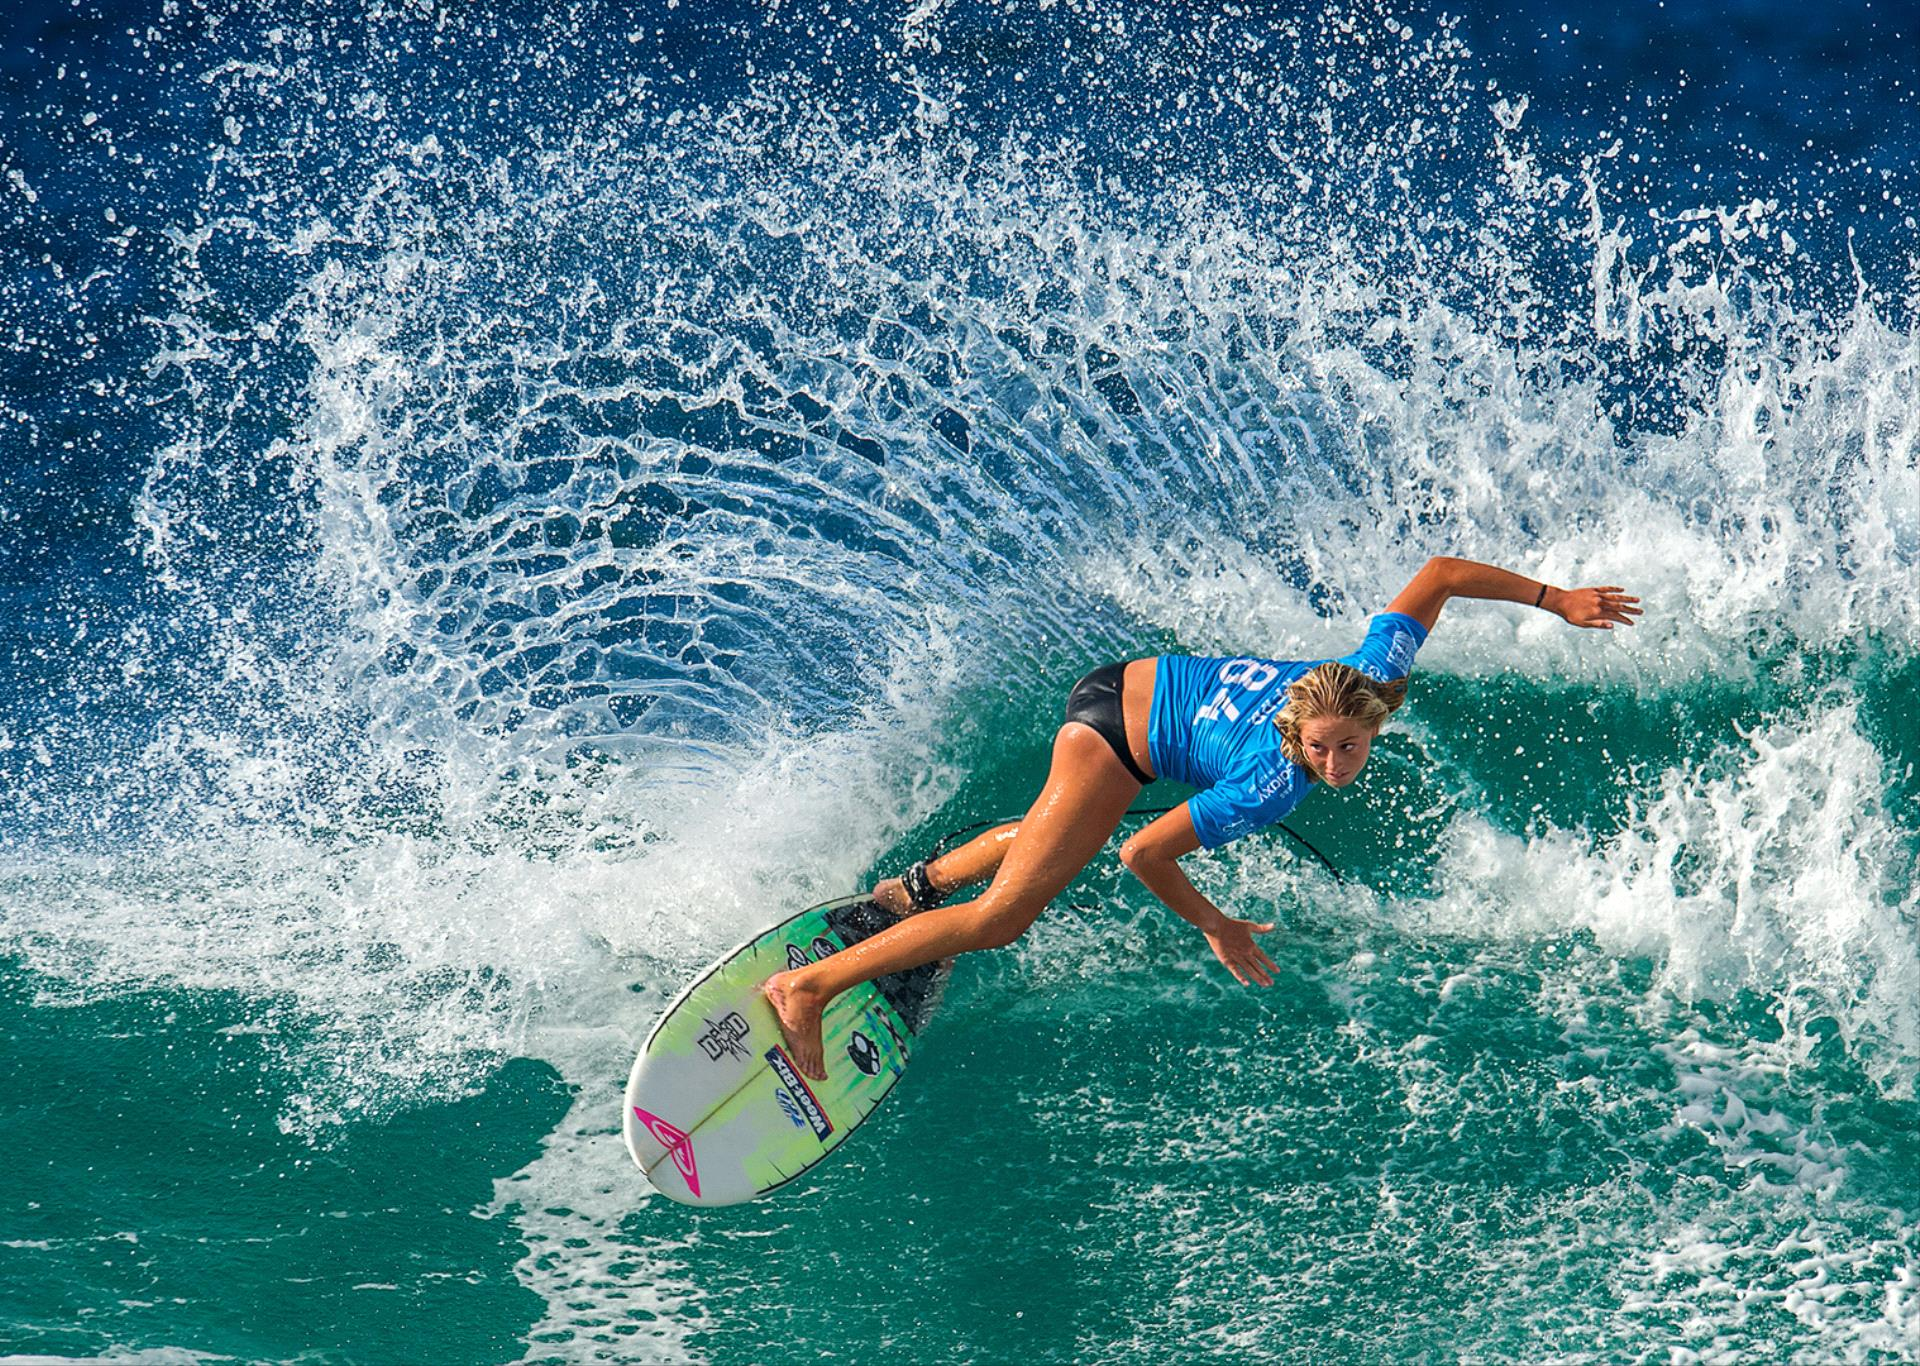 Certificate of Commendation - Xuehai Lu (China) - Surfing Girl